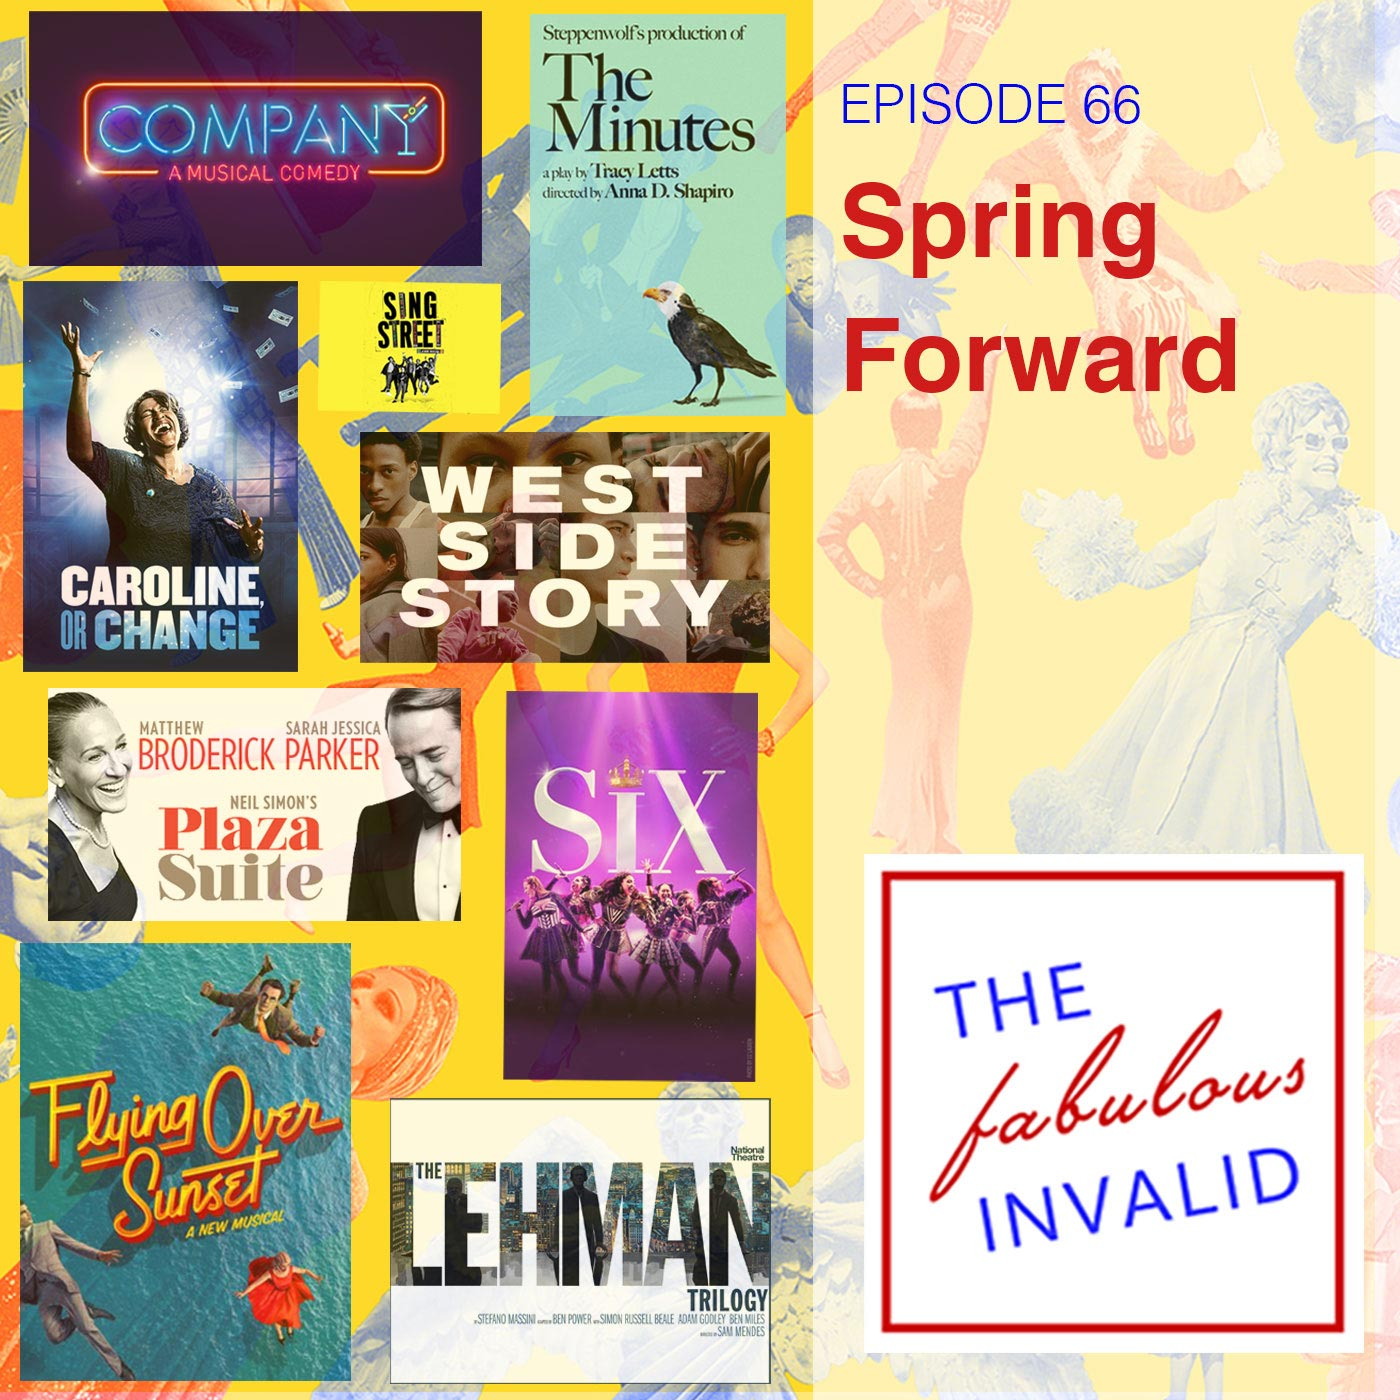 The Fabulous Invalid Episode 66 Spring Forward Preview